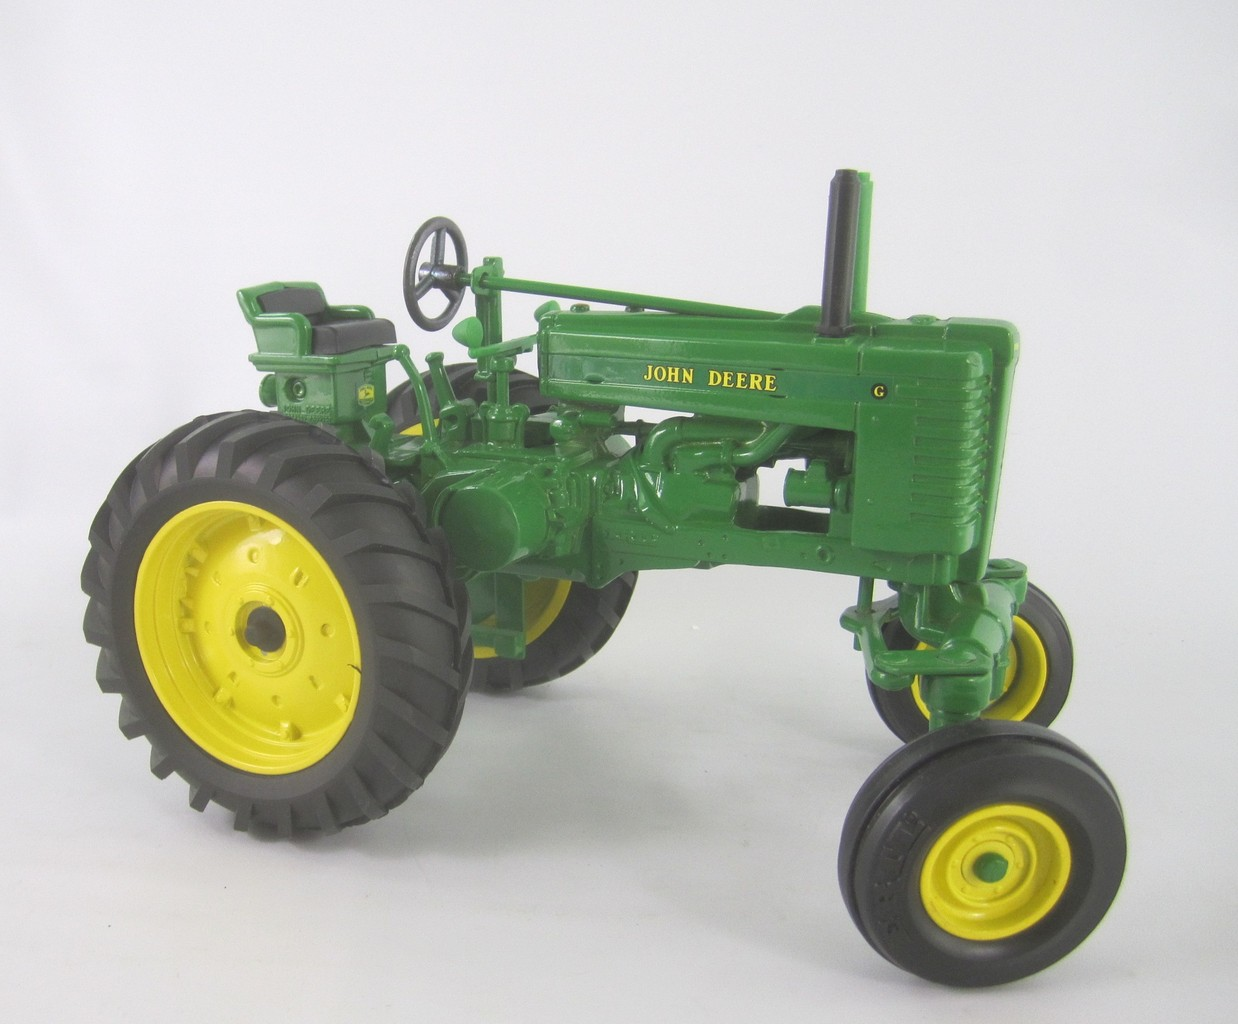 john deere two-cylinder letter series tractors